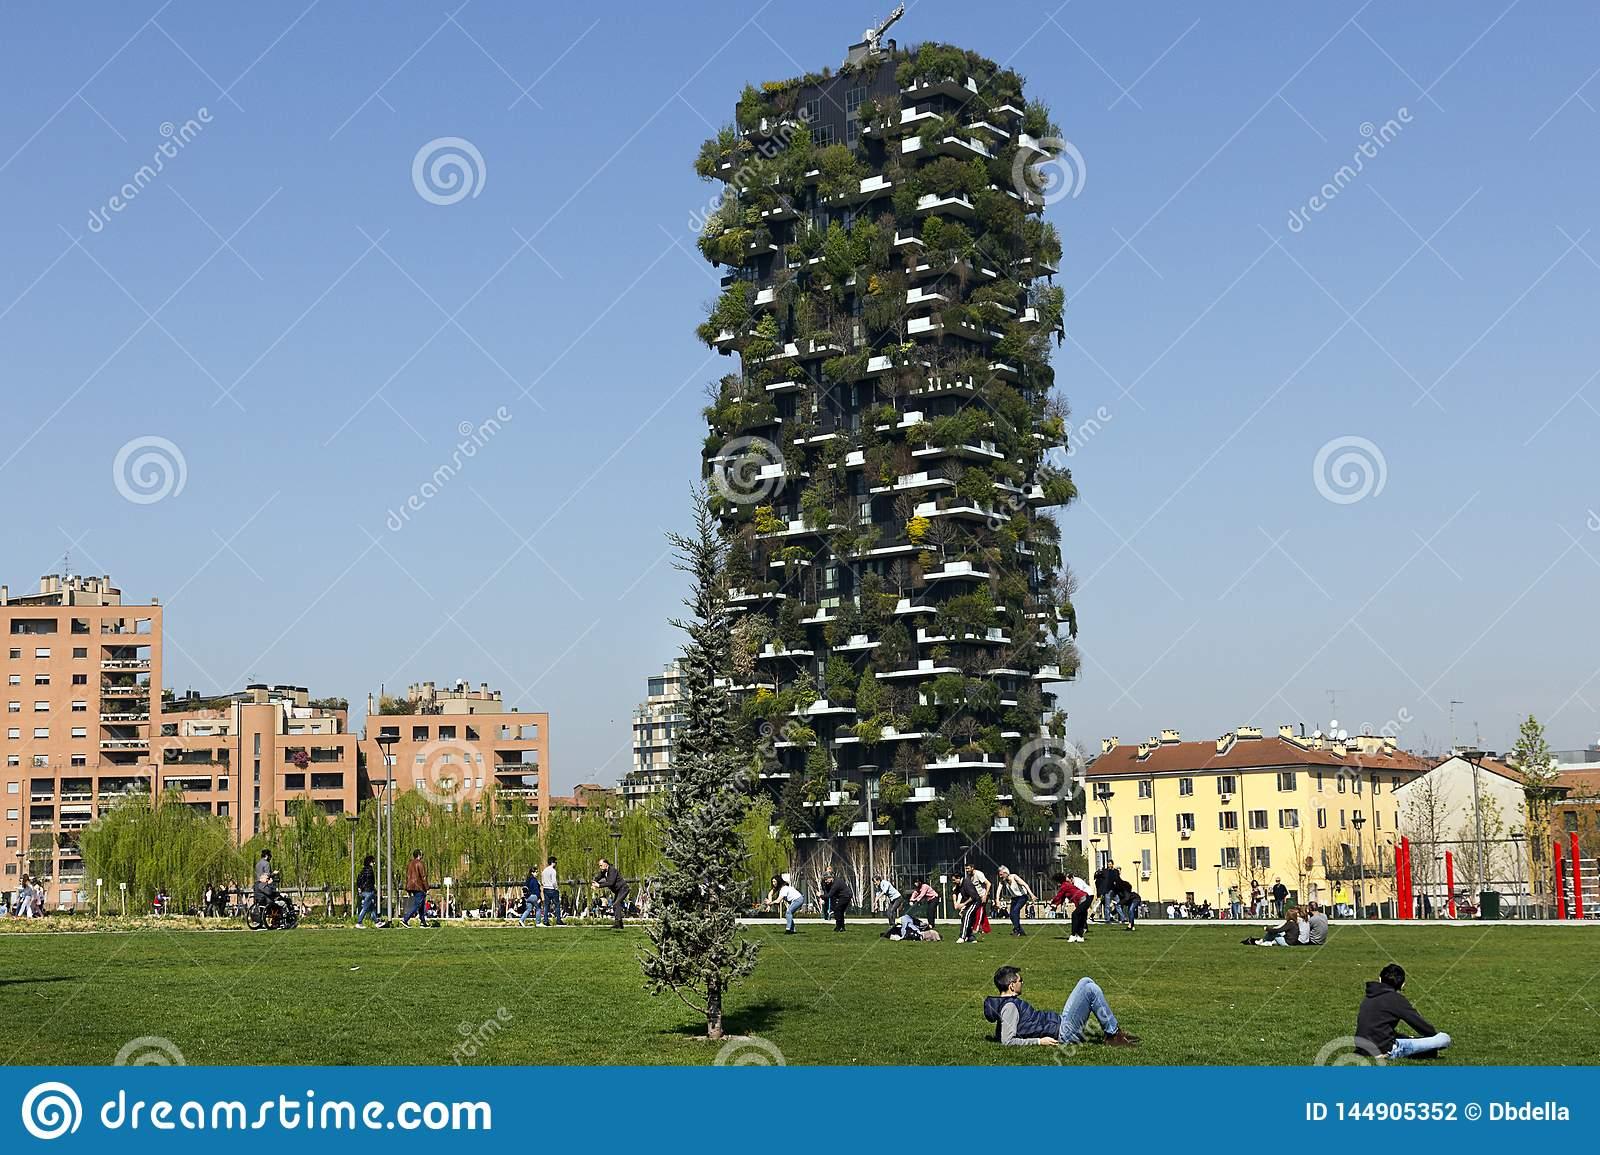 Milan - People enjoy in a spring day in Porta Nuova District, a good time in the large green park. Lombardy Italy